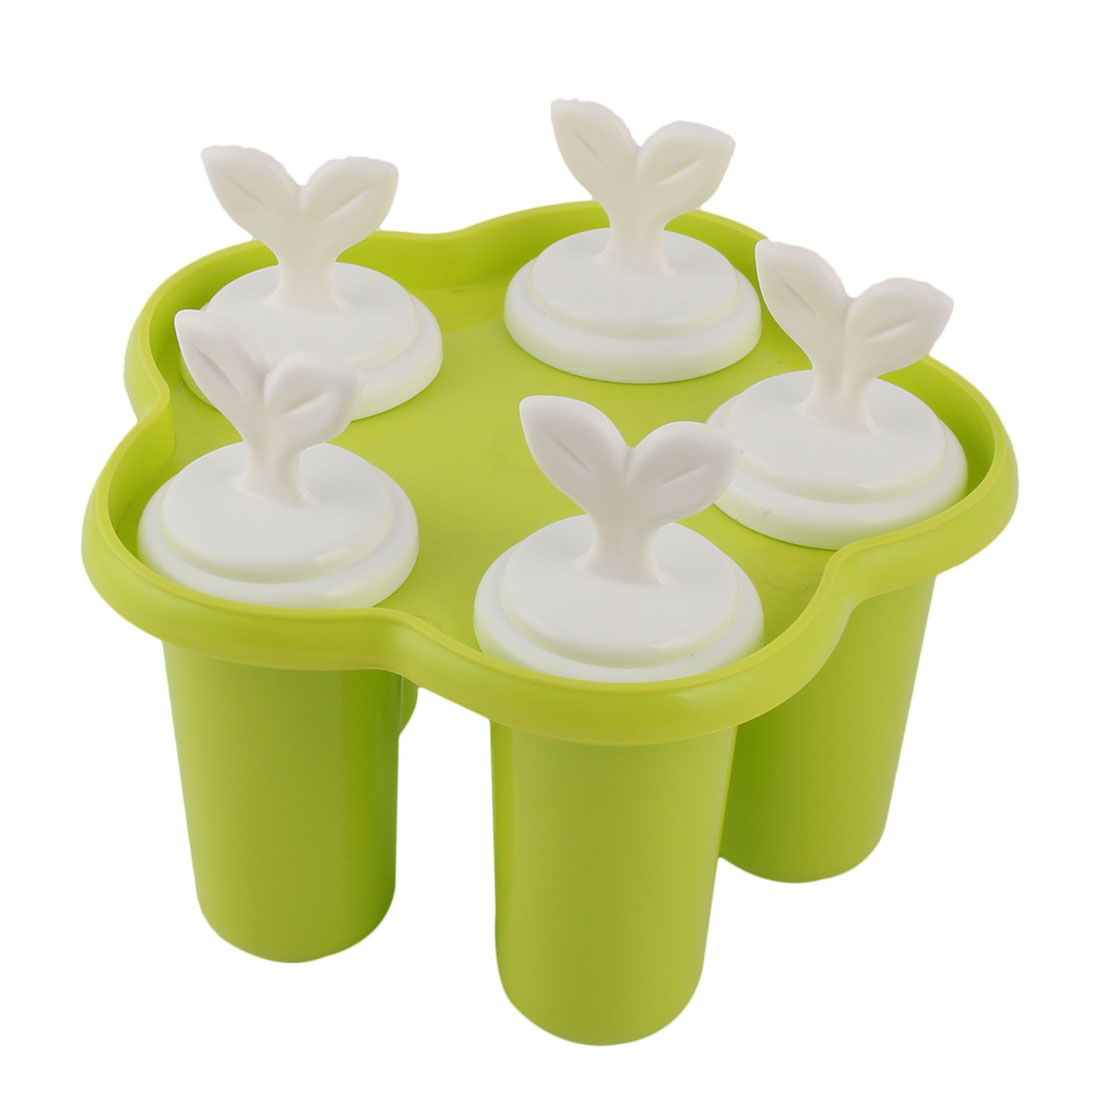 Home Plastic DIY Ice Cube Frozen Juice Popsicle Frame Sherbet Maker Mold Light Green